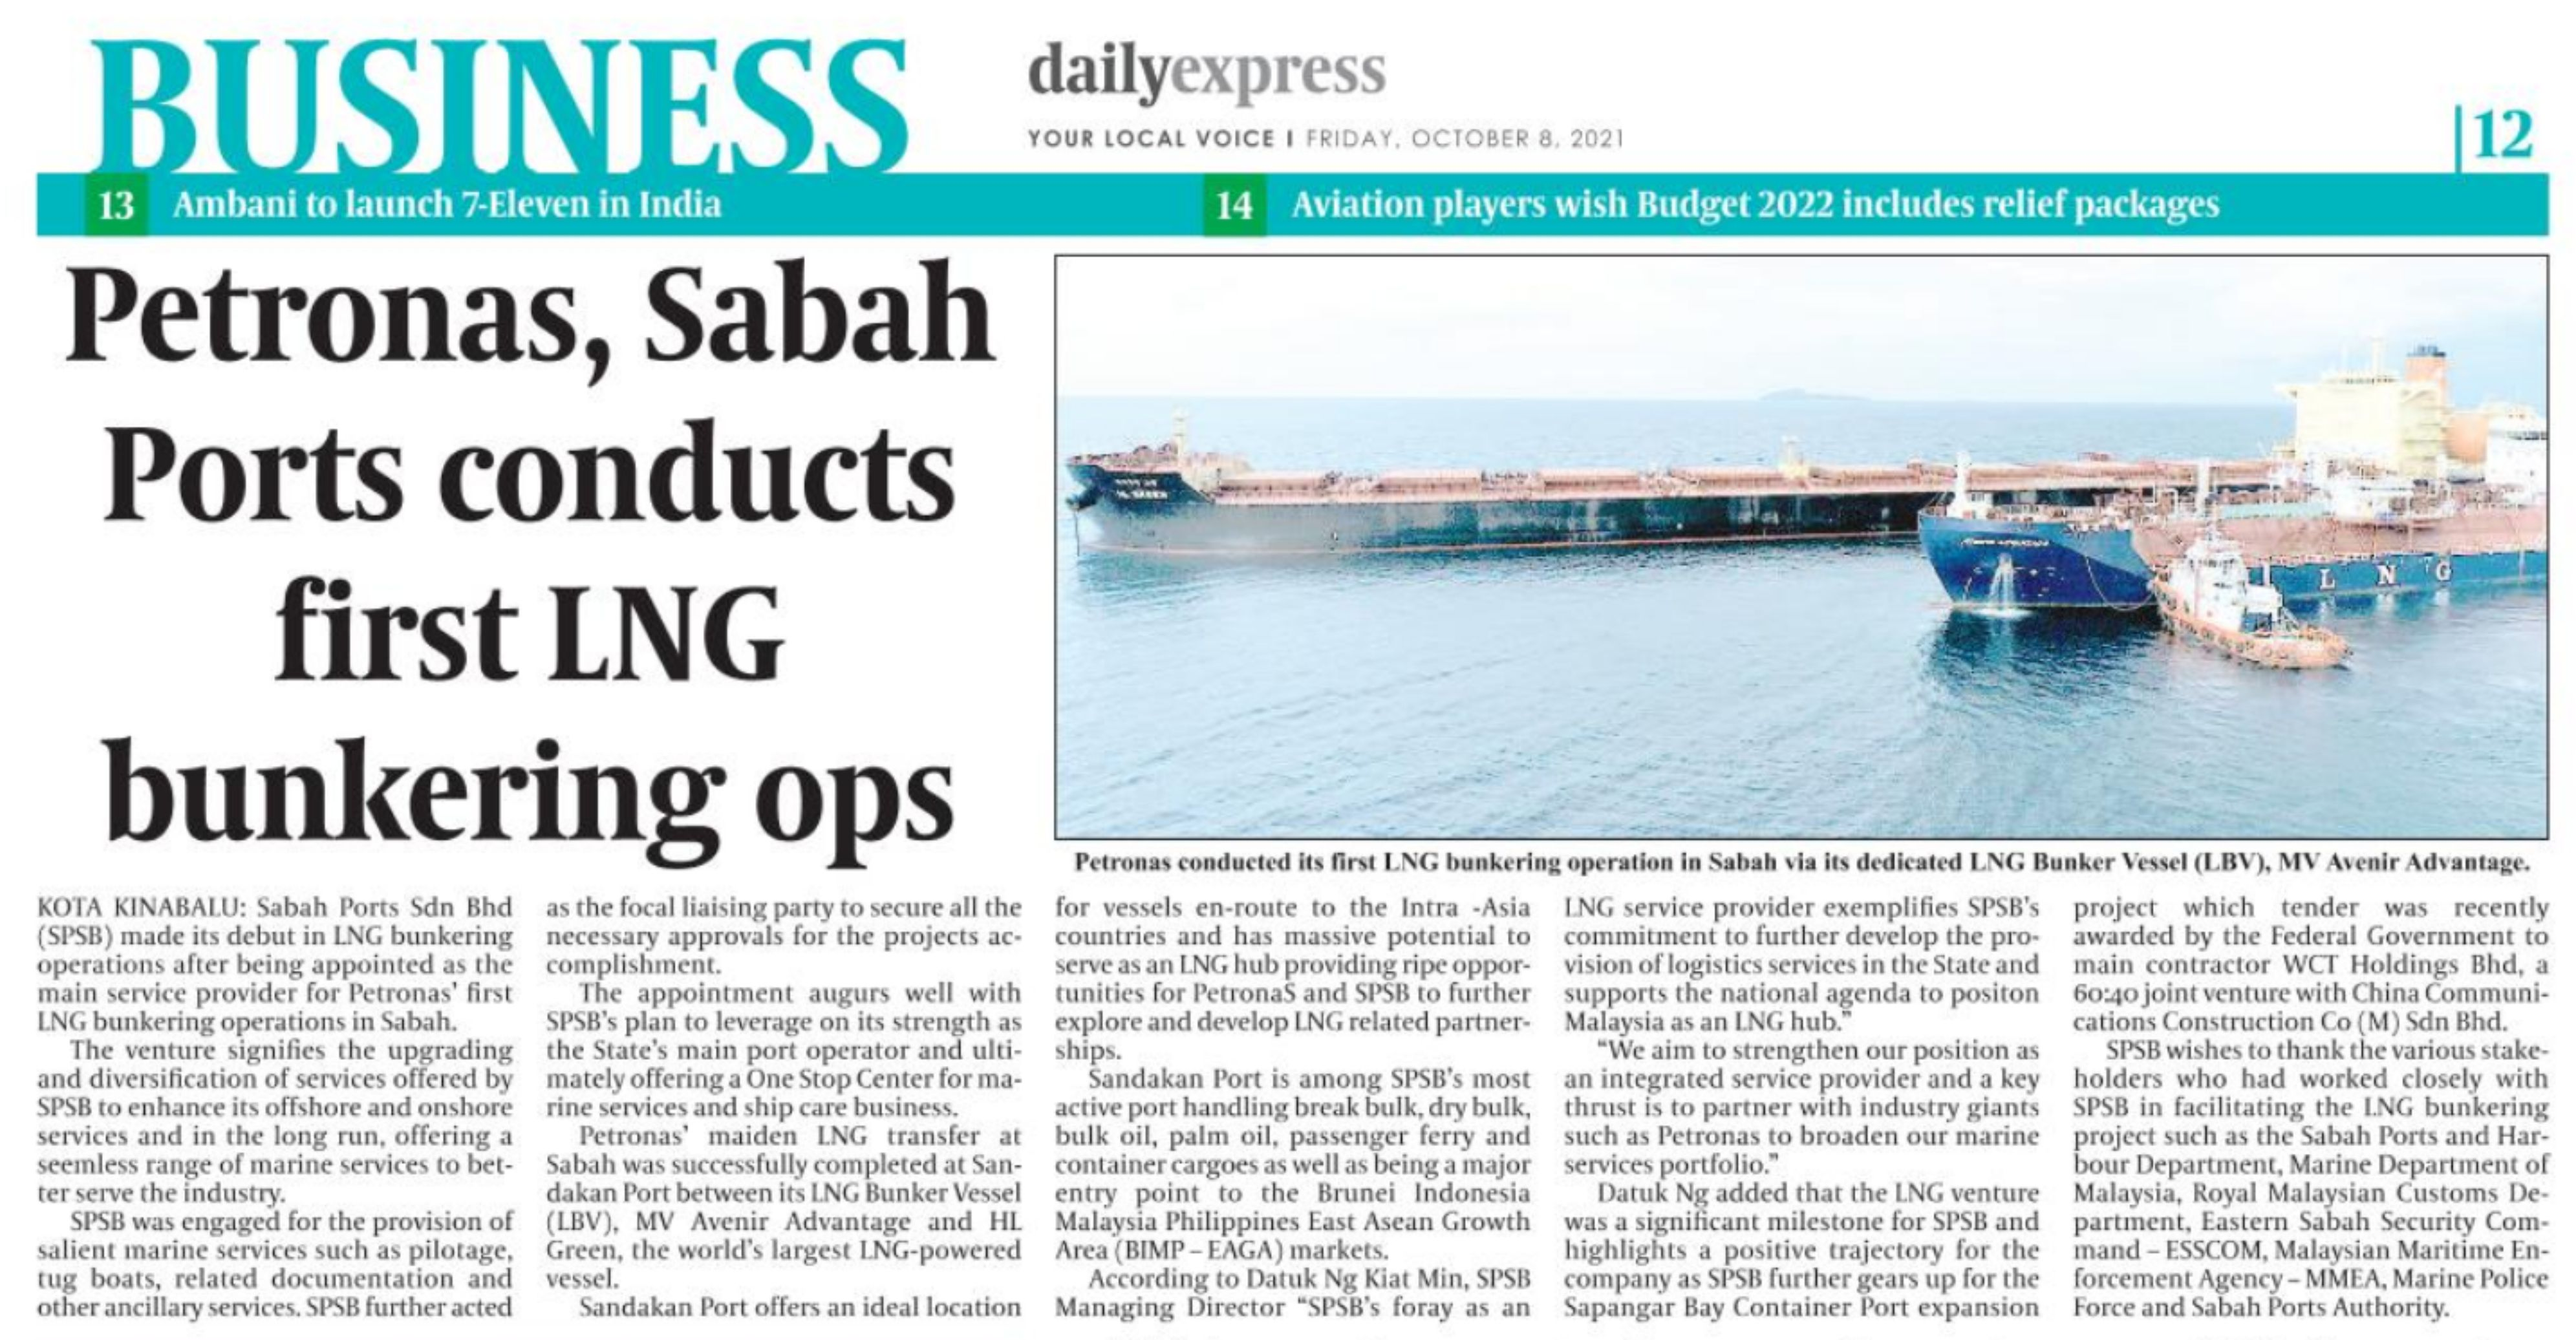 Petronas, Sabah Ports Conducts First LNG Bunkering Ops